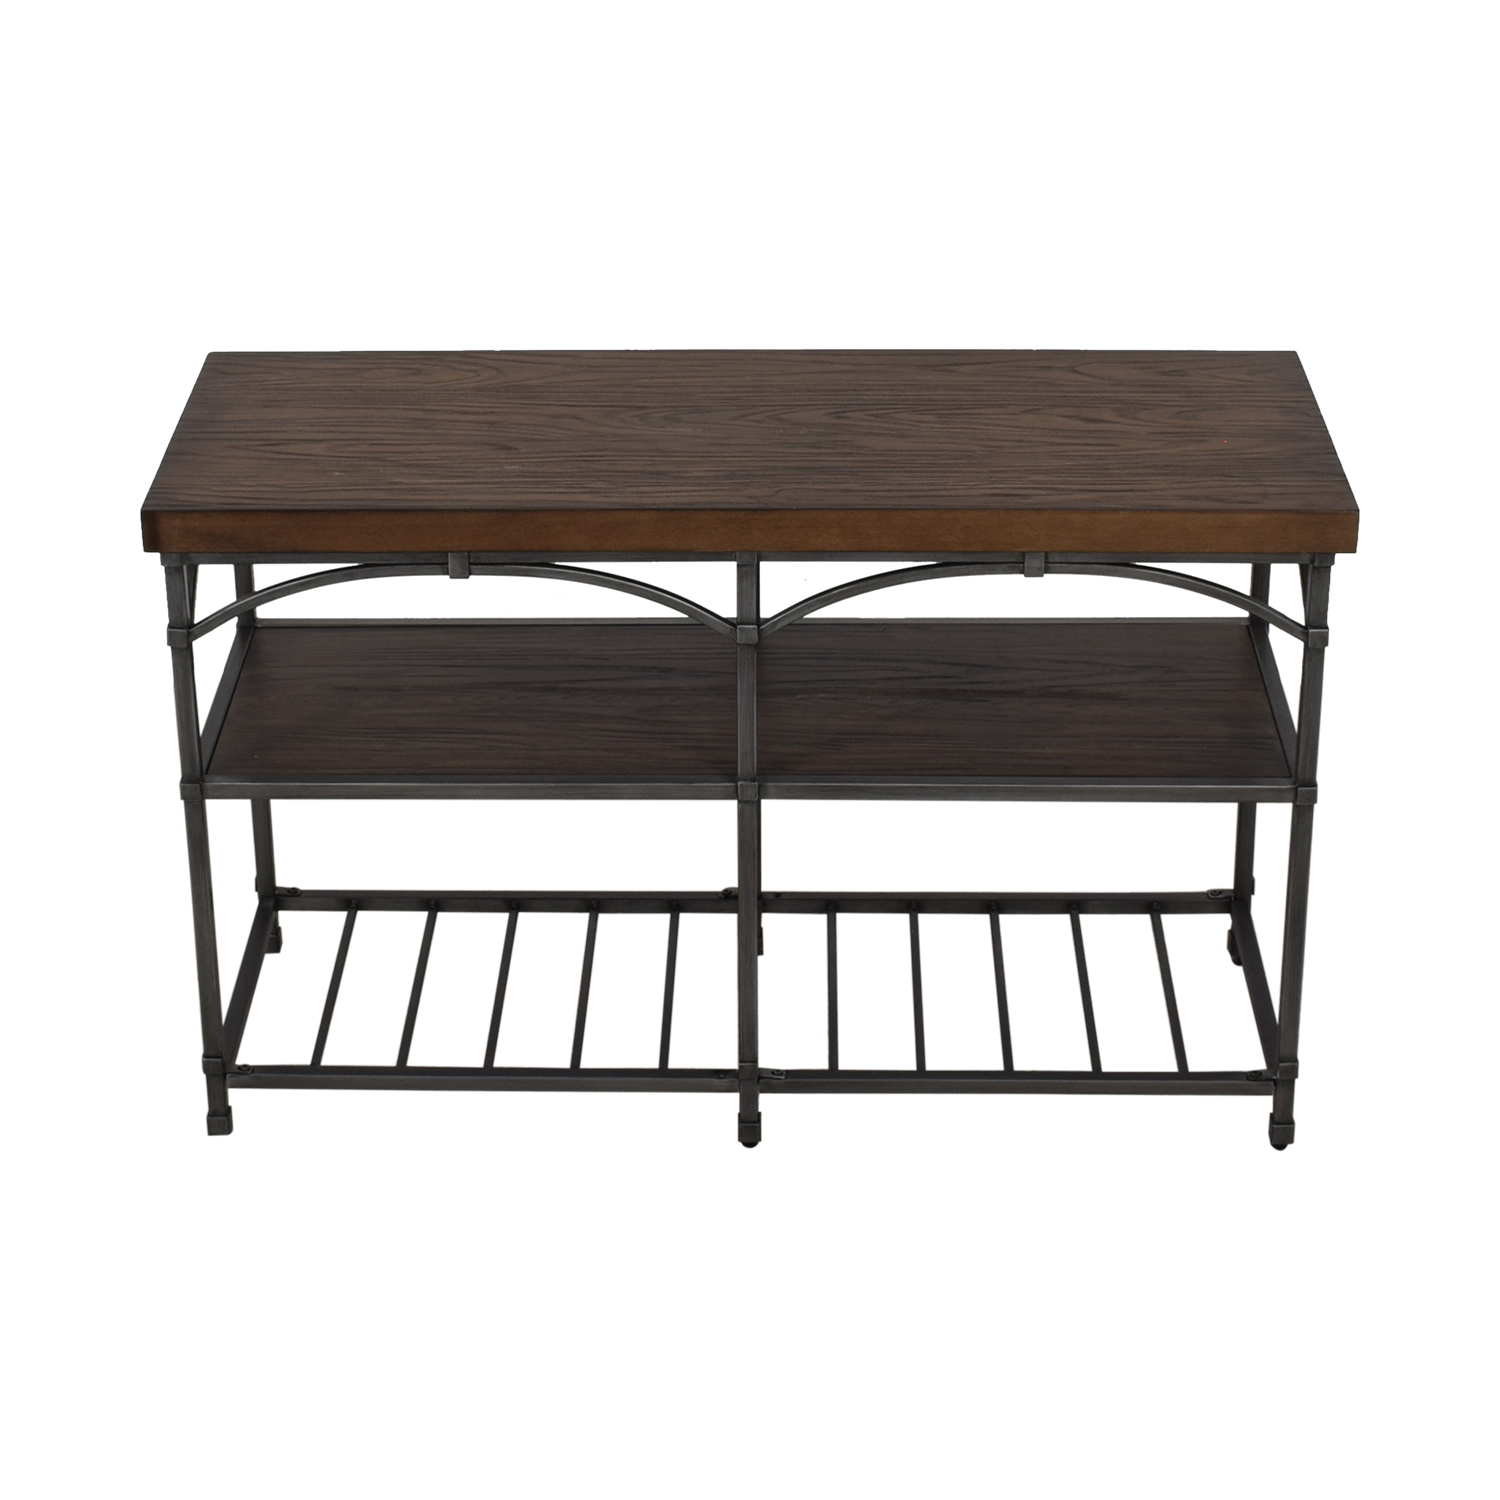 Trent Austin Franklin Console Table sale